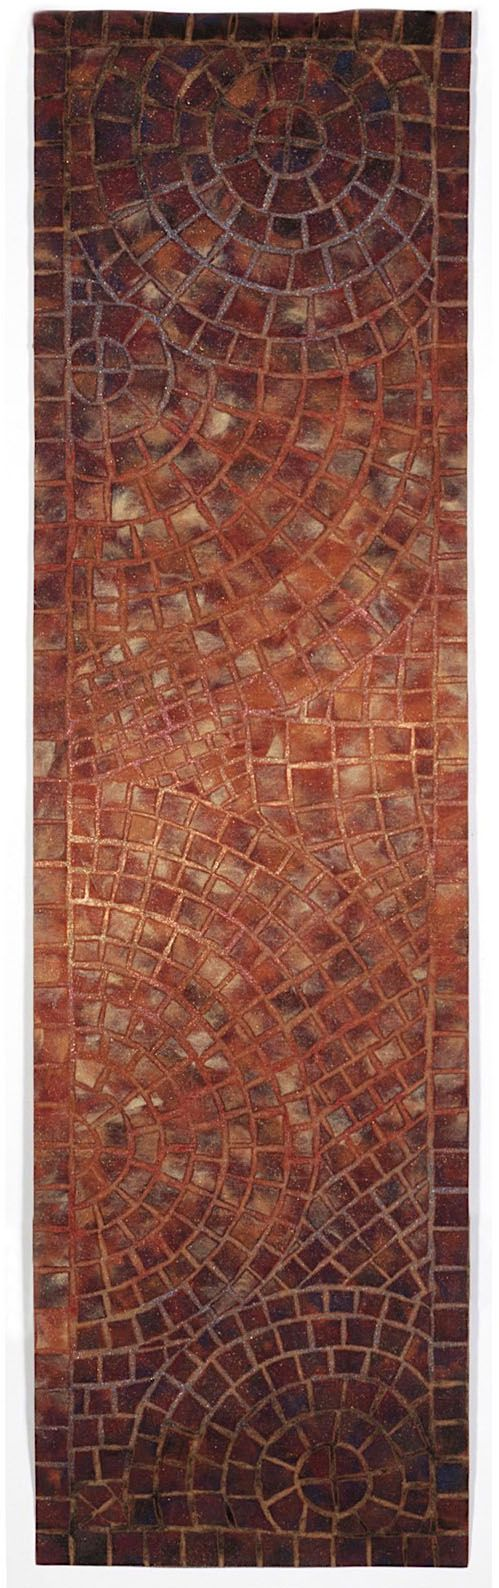 trans ocean visions v contemporary area rug collection